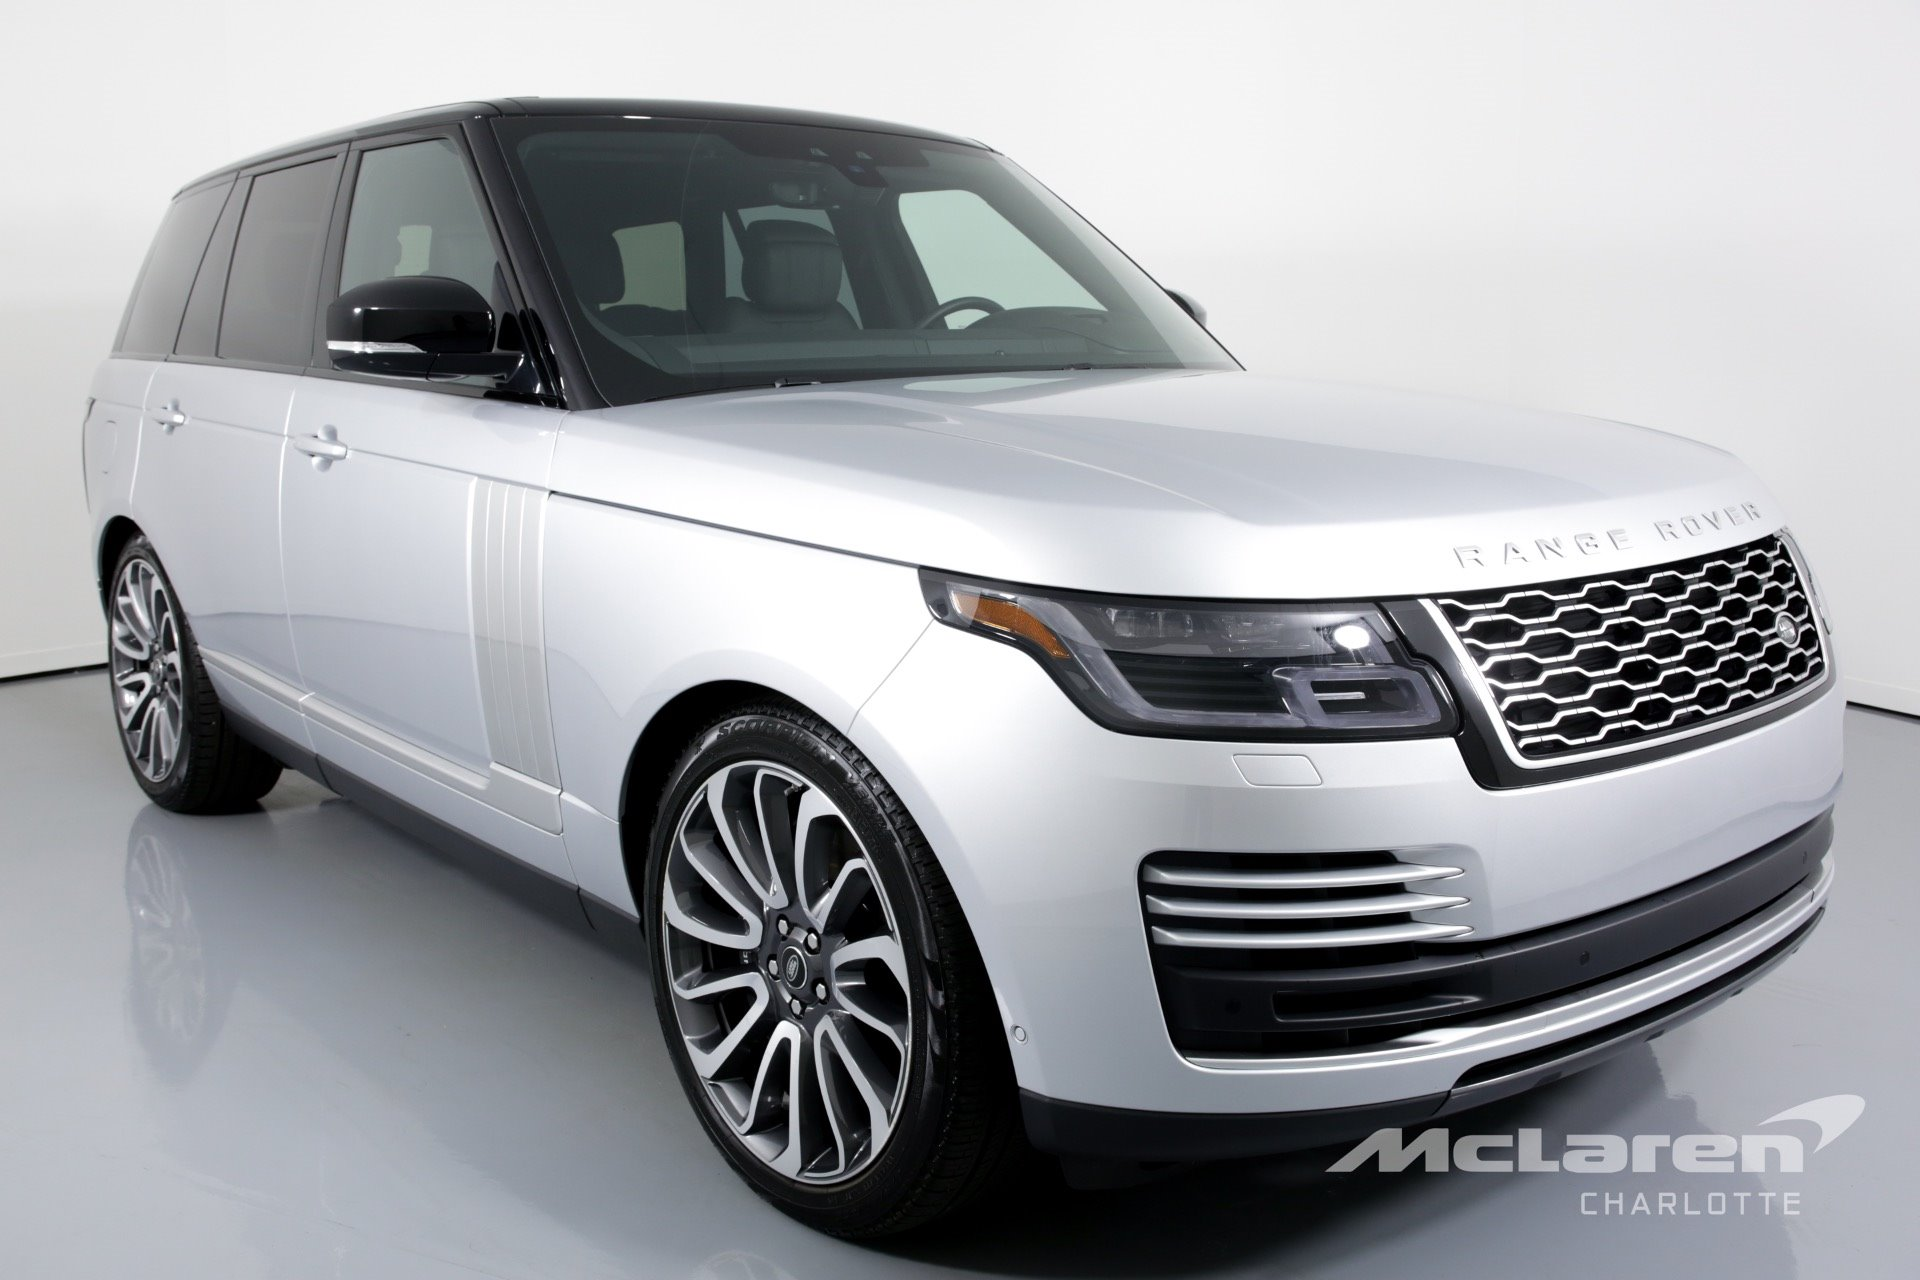 New 2019 Land Rover-Range Rover SVAutobiography LWB Range Rover SVAutobiography LWB for sale $209,500 at M and V Leasing in Brooklyn NY 11223 1